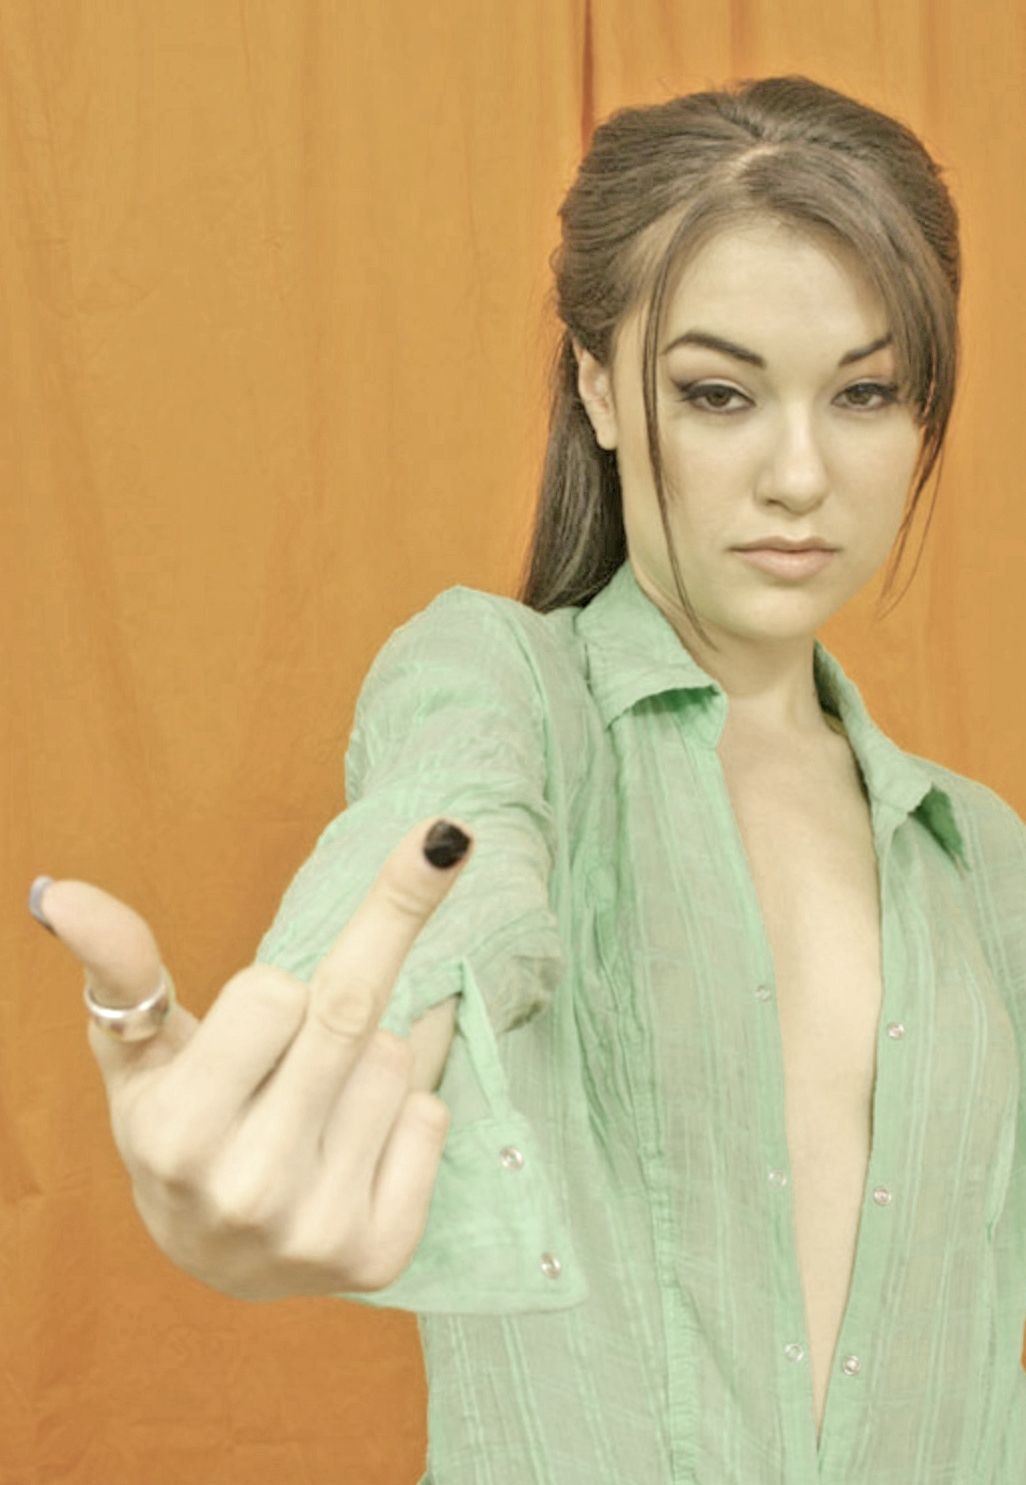 Hacked Sasha Grey nude (15 photo), Topless, Sideboobs, Selfie, underwear 2019